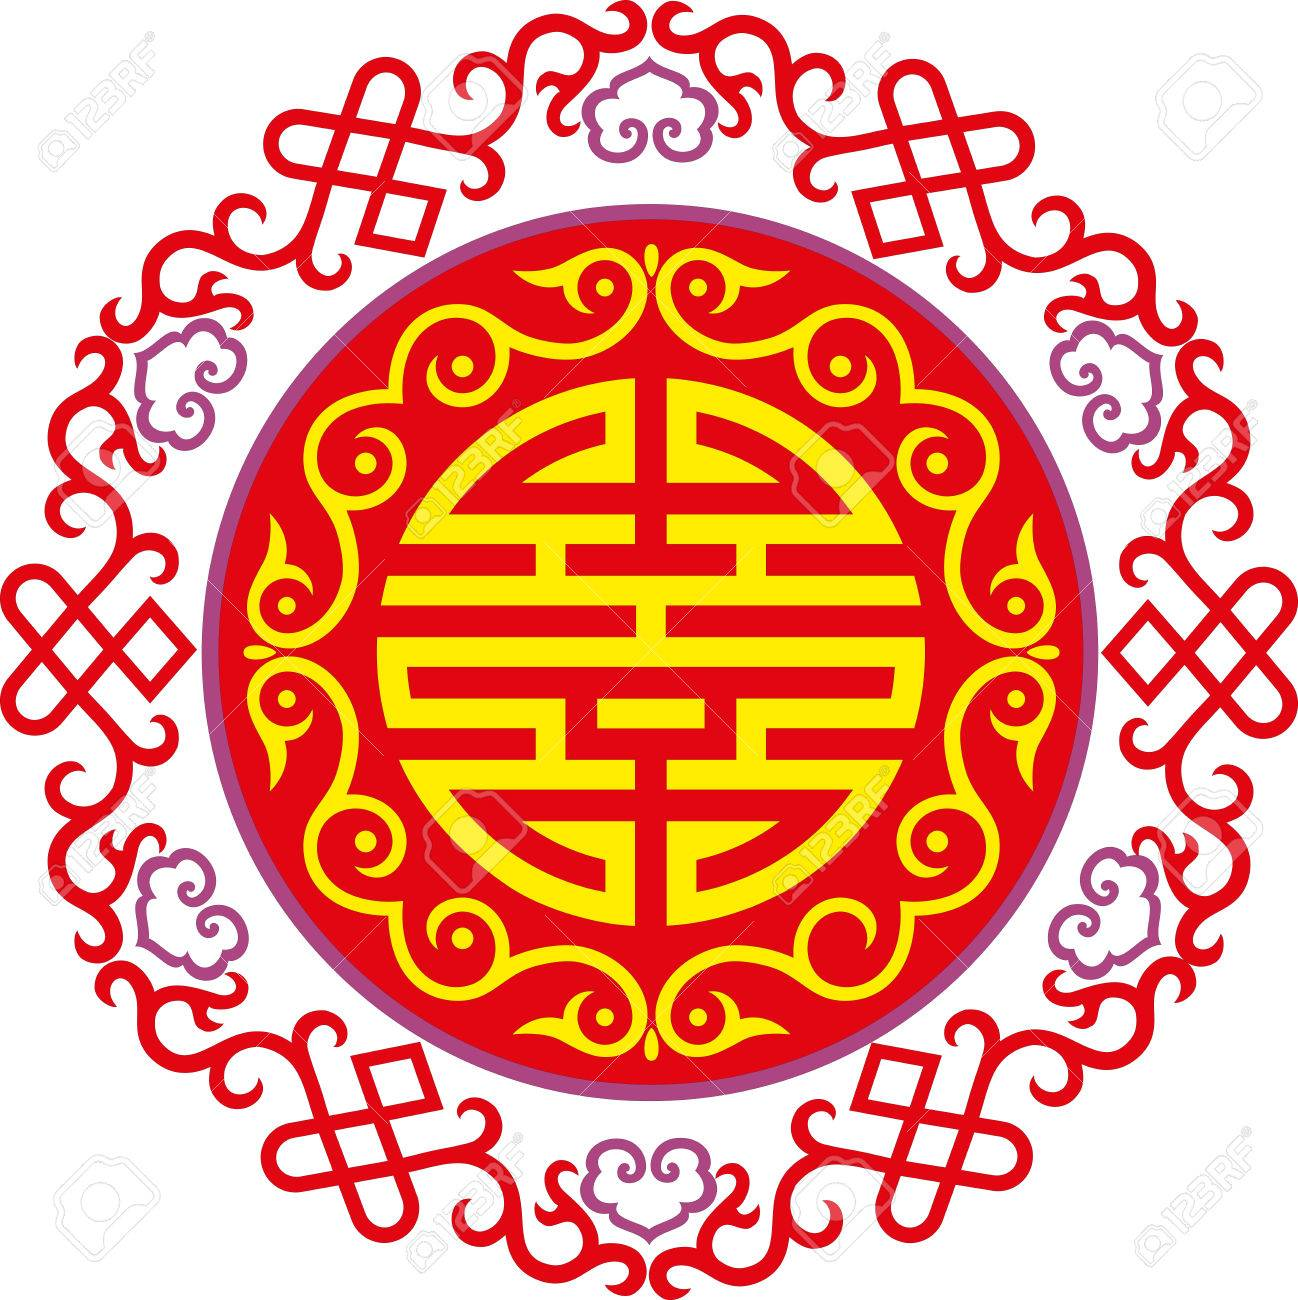 oriental chinese ornament asian traditional pattern floral royalty free cliparts vectors and stock illustration image 53565362 oriental chinese ornament asian traditional pattern floral